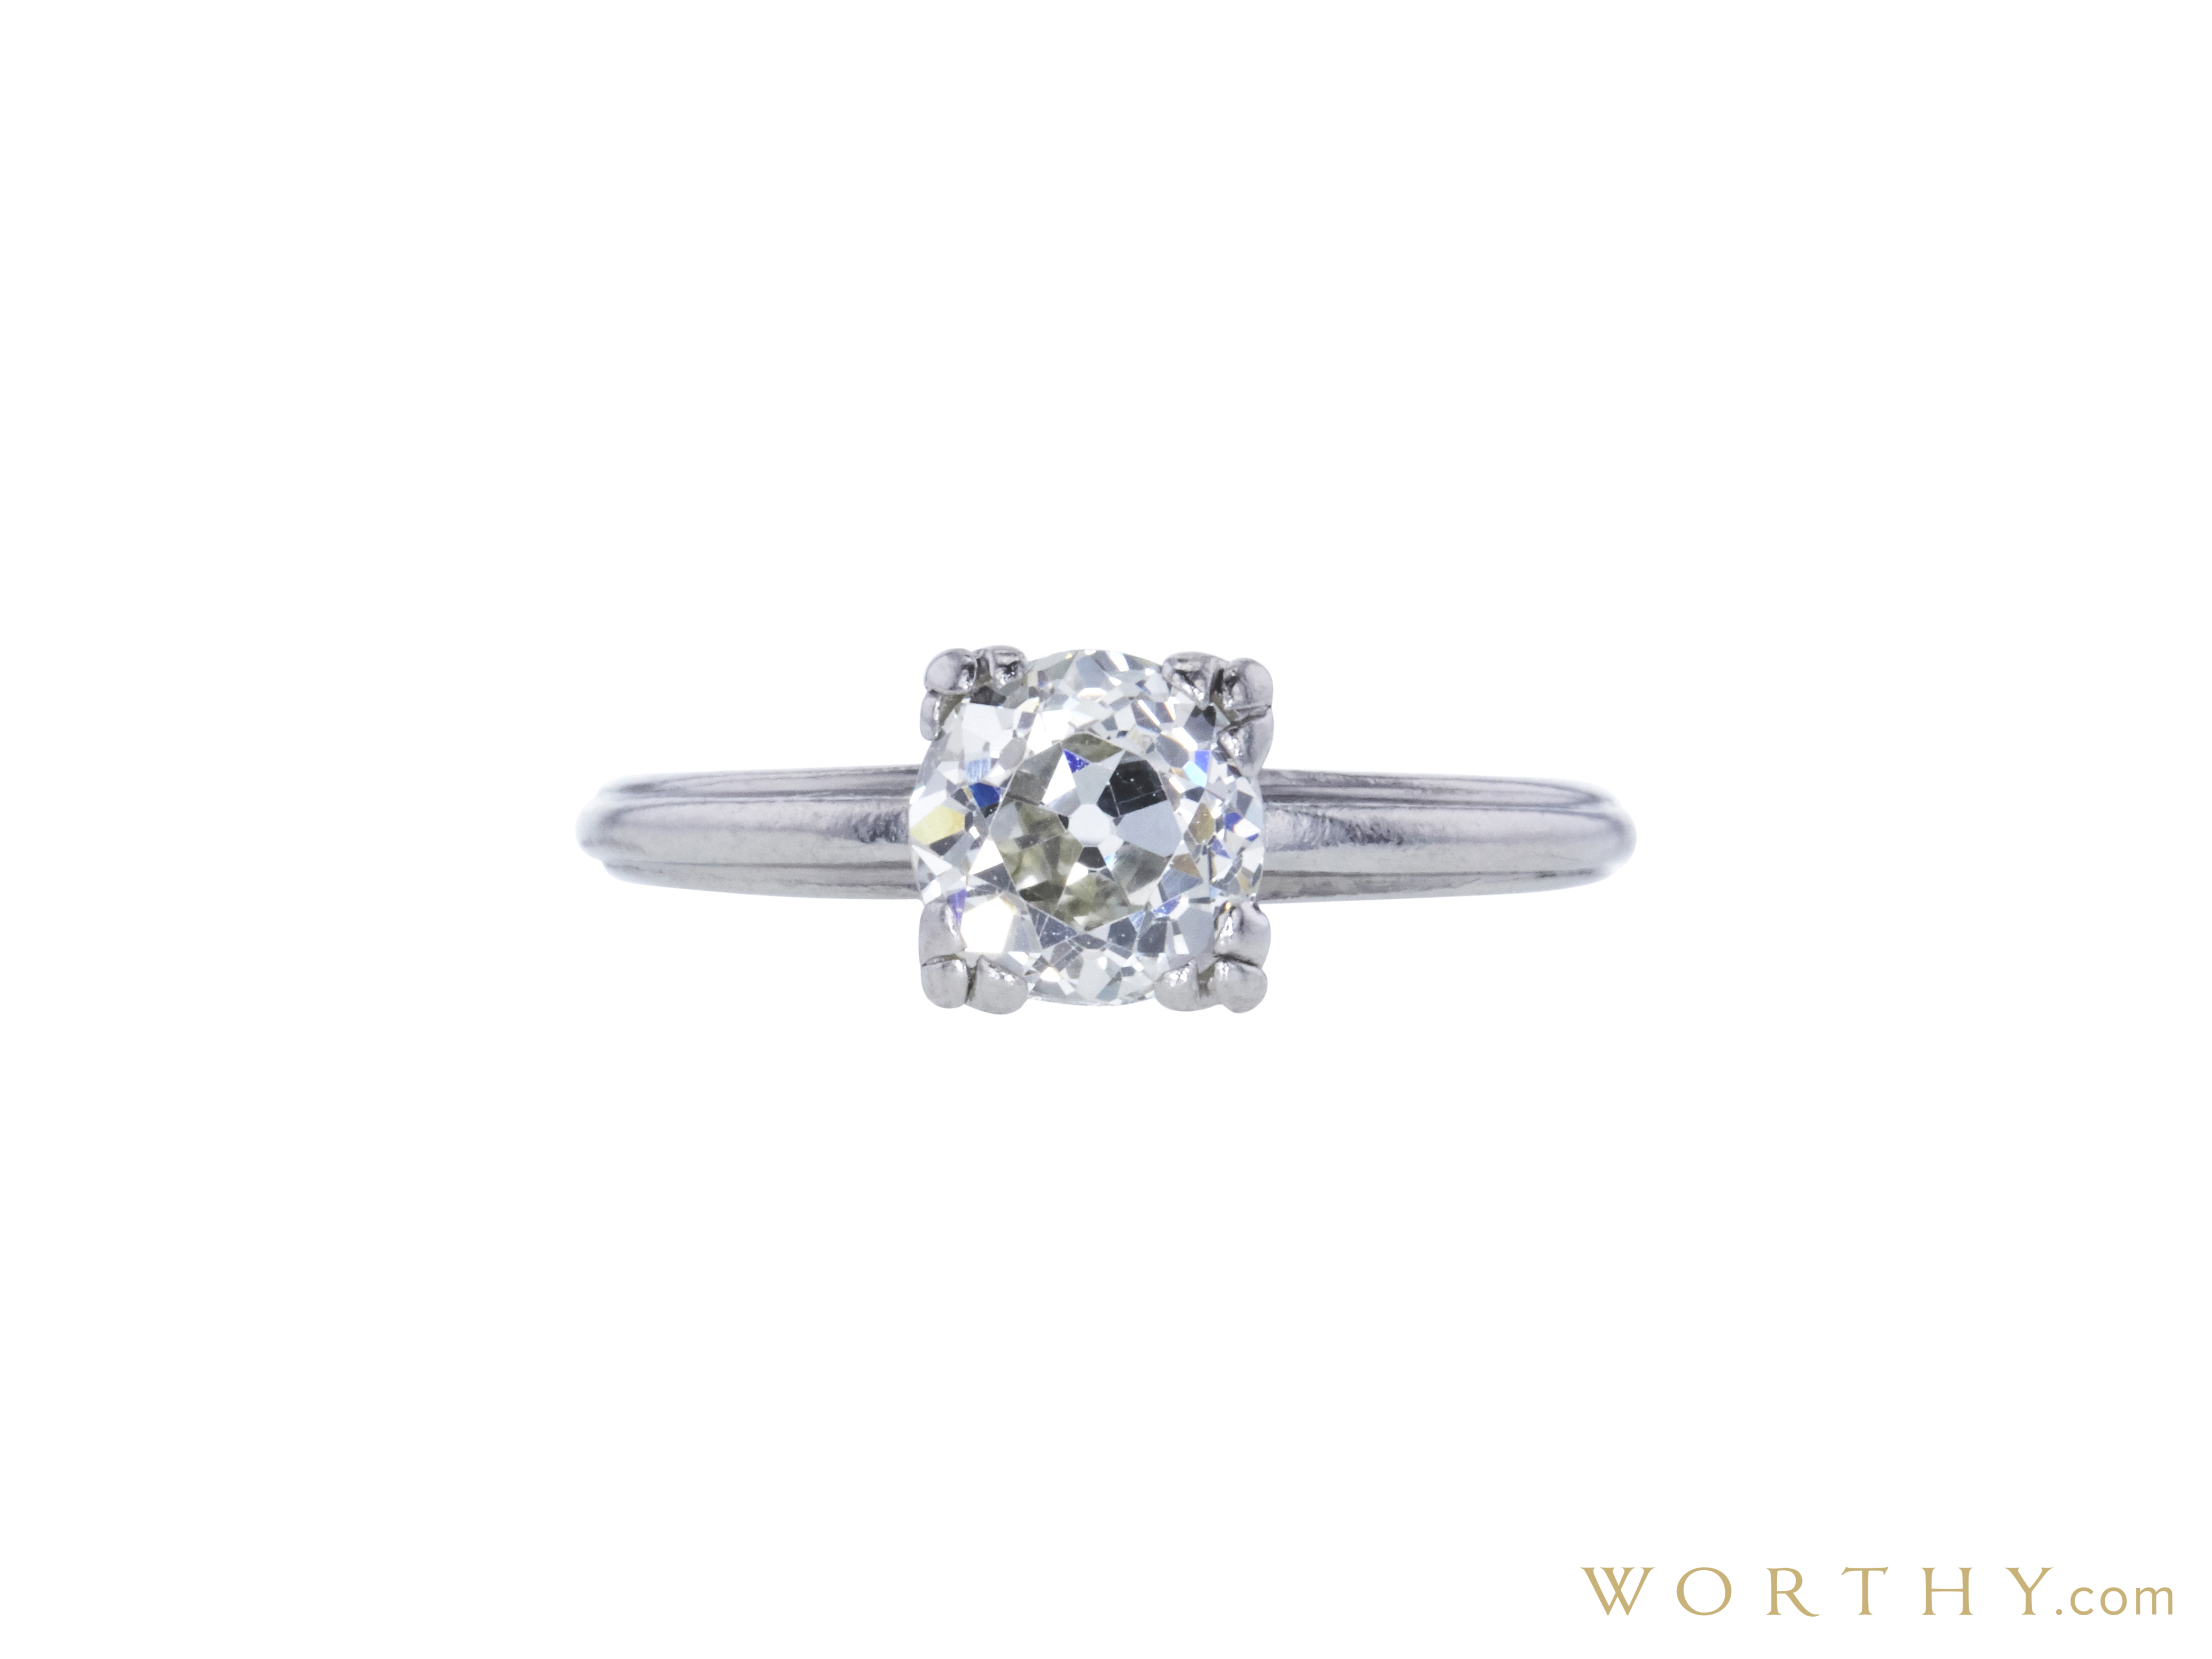 1 51 Ct Oval G Vs2 Halo Diamond Engagement Ring In 18k White Gold as well Cushion Diamond Engagement Ring Pave 6carats as well 15 Carat Gold Ring moreover Baguette Cut Diamond Pendant together with . on 6 carat oval diamond ring